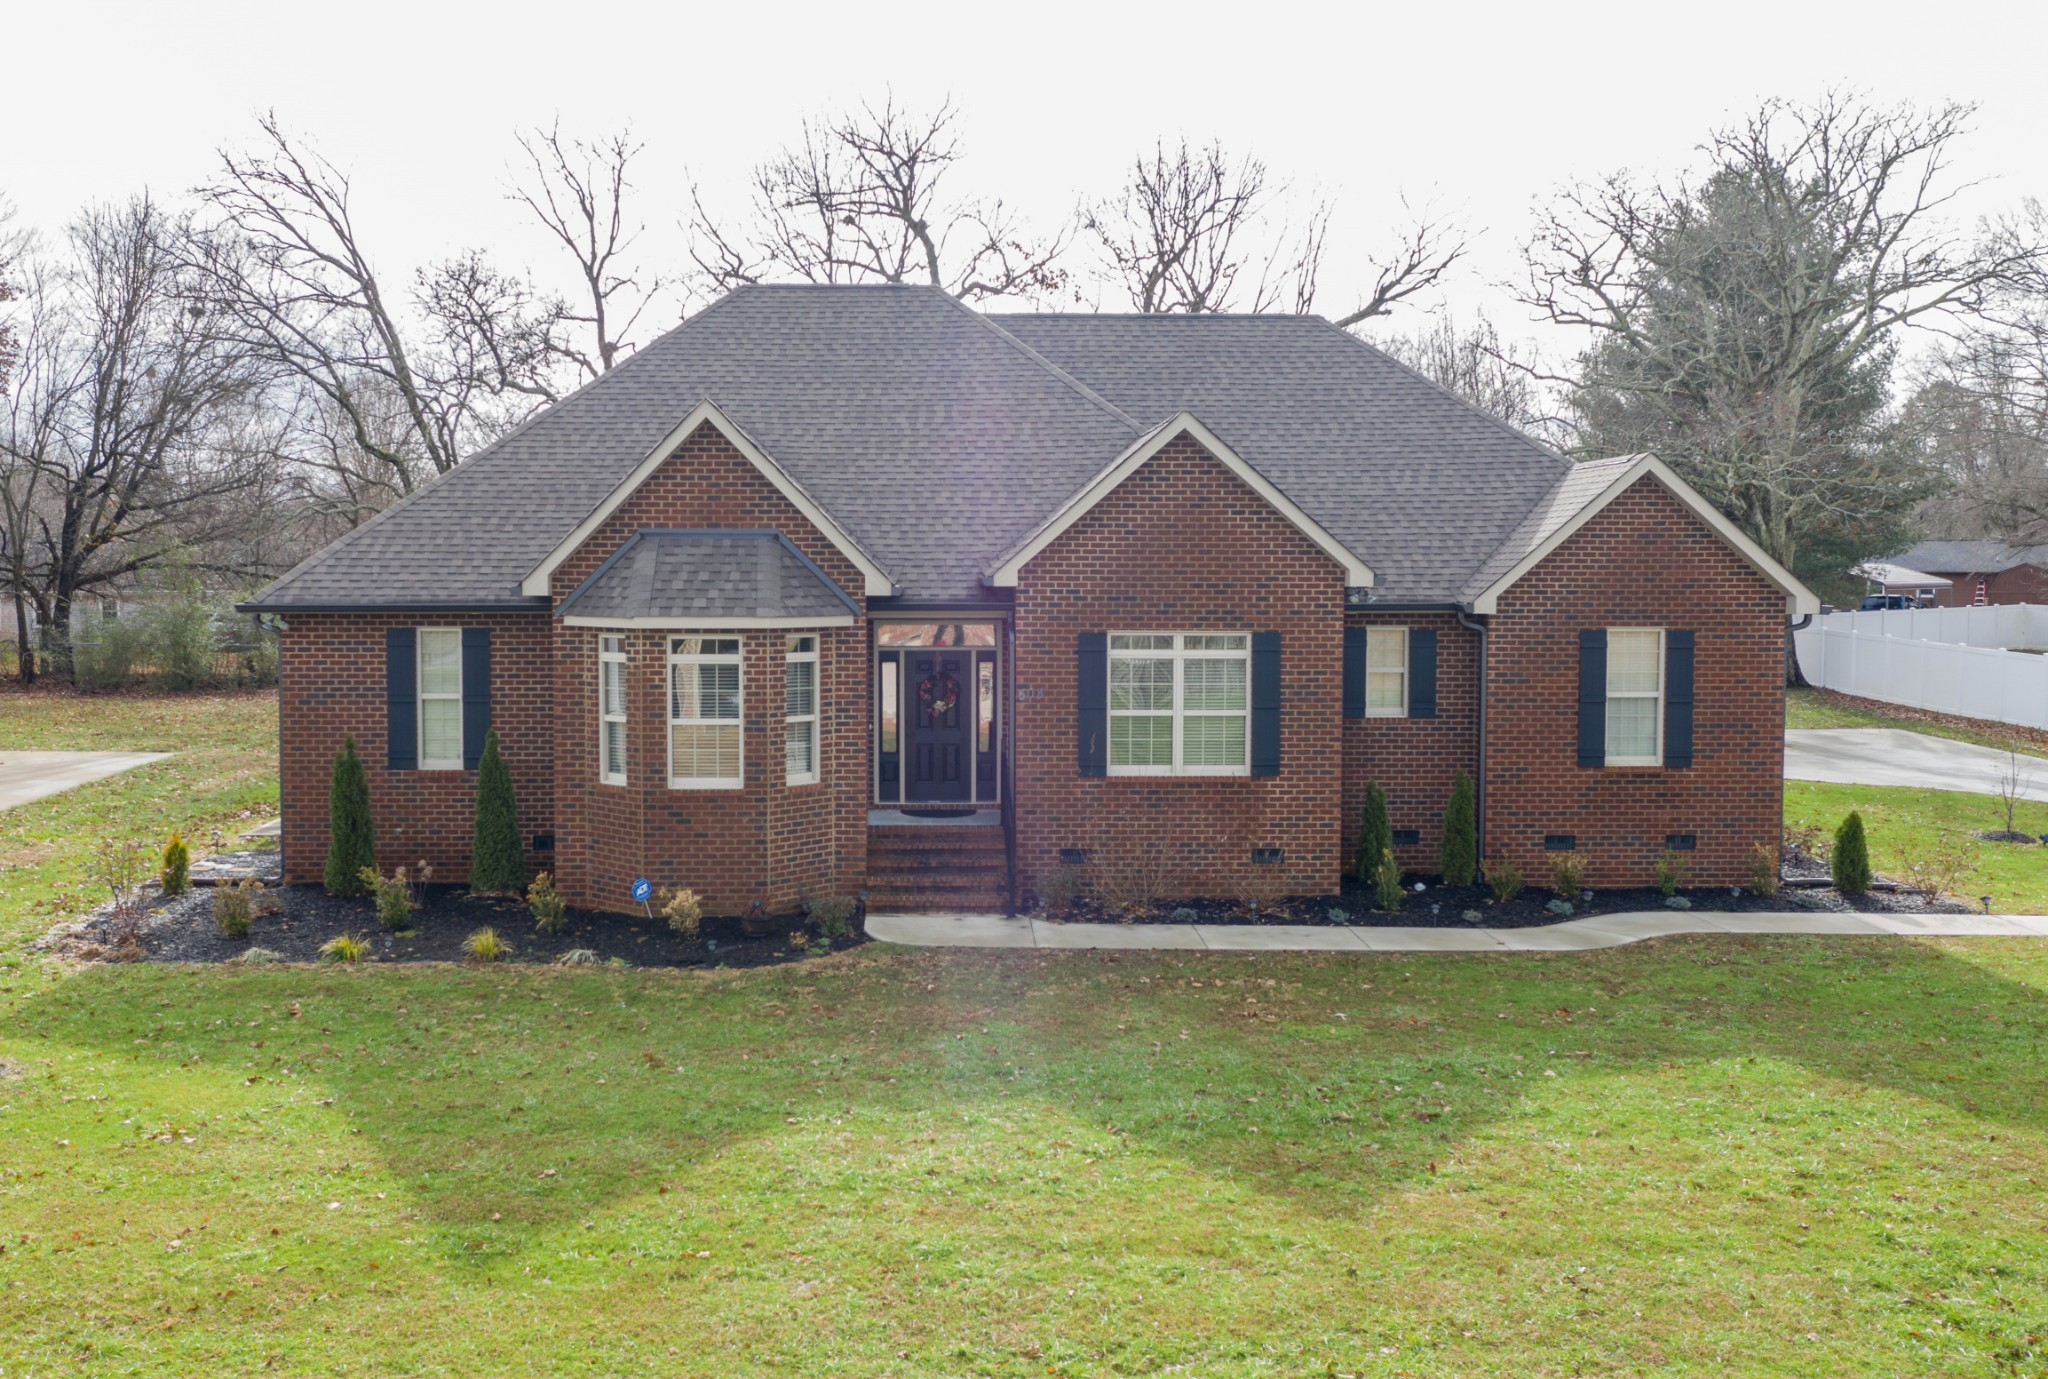 503 SETTLERS TRACE, Tullahoma, TN 37388 - Tullahoma, TN real estate listing